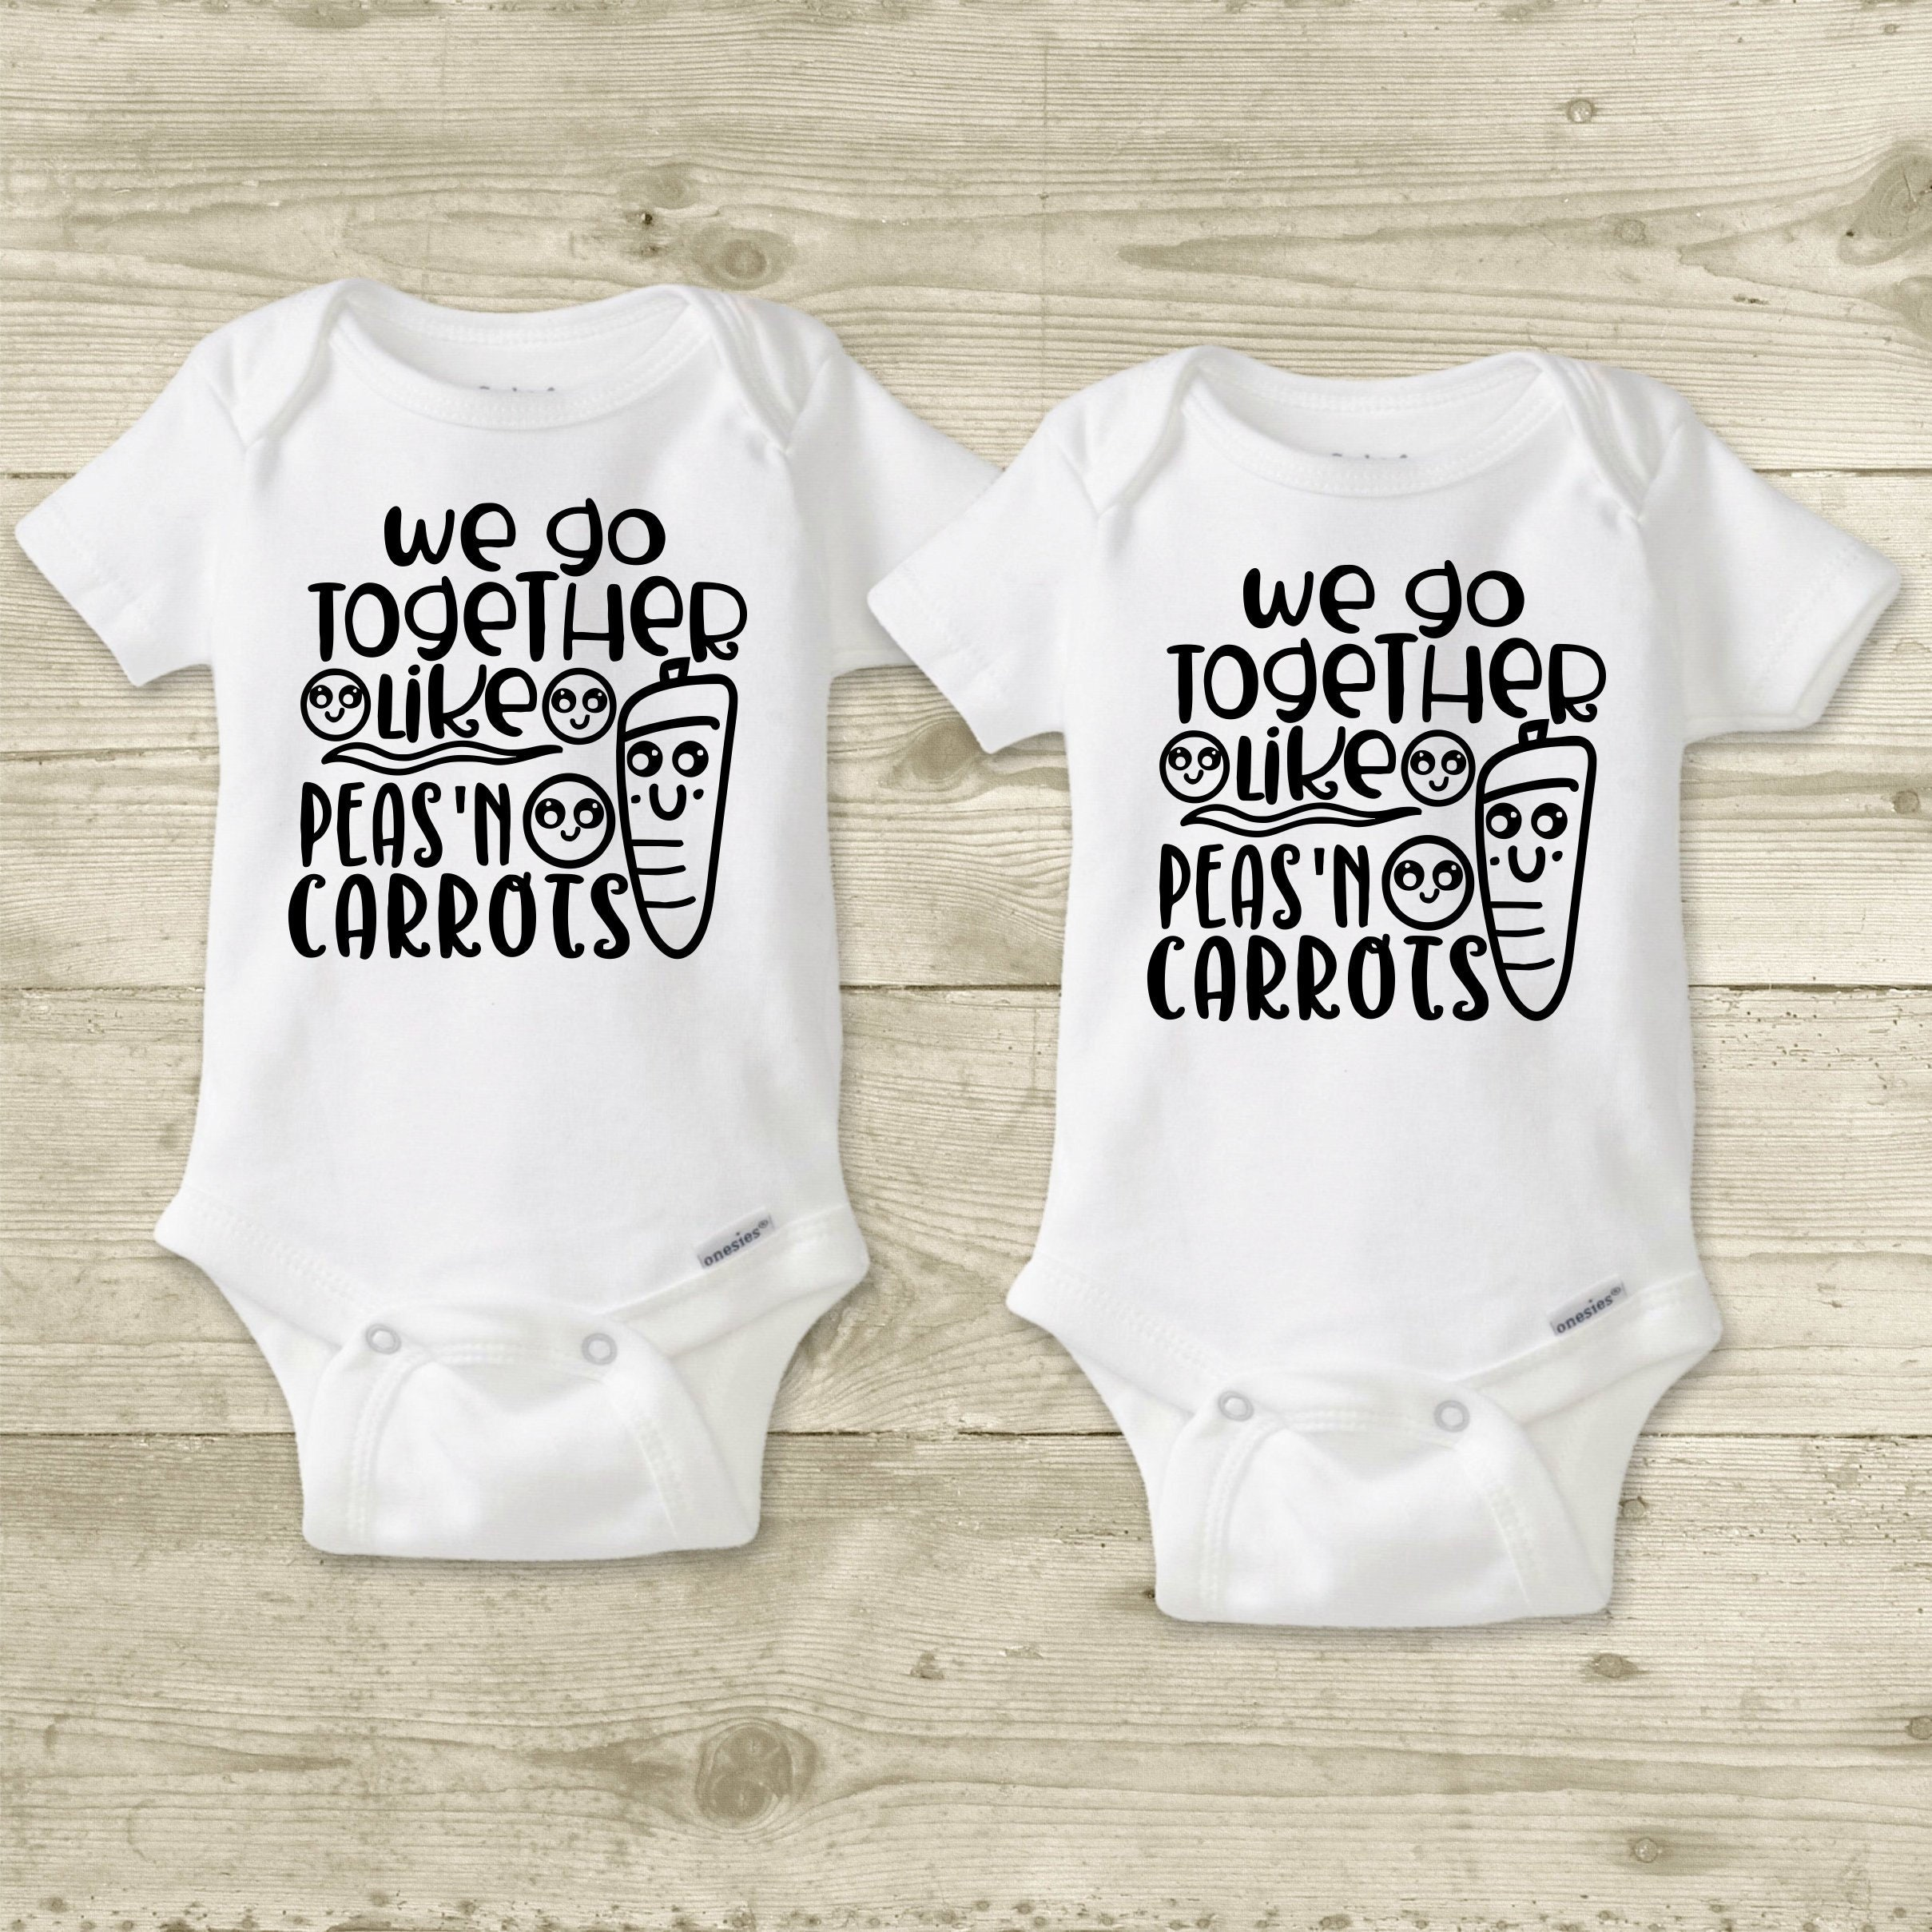 ead9c71f8551 Funny Twin Onesies® or Carter's® Brand Food Baby Clothes | Etsy